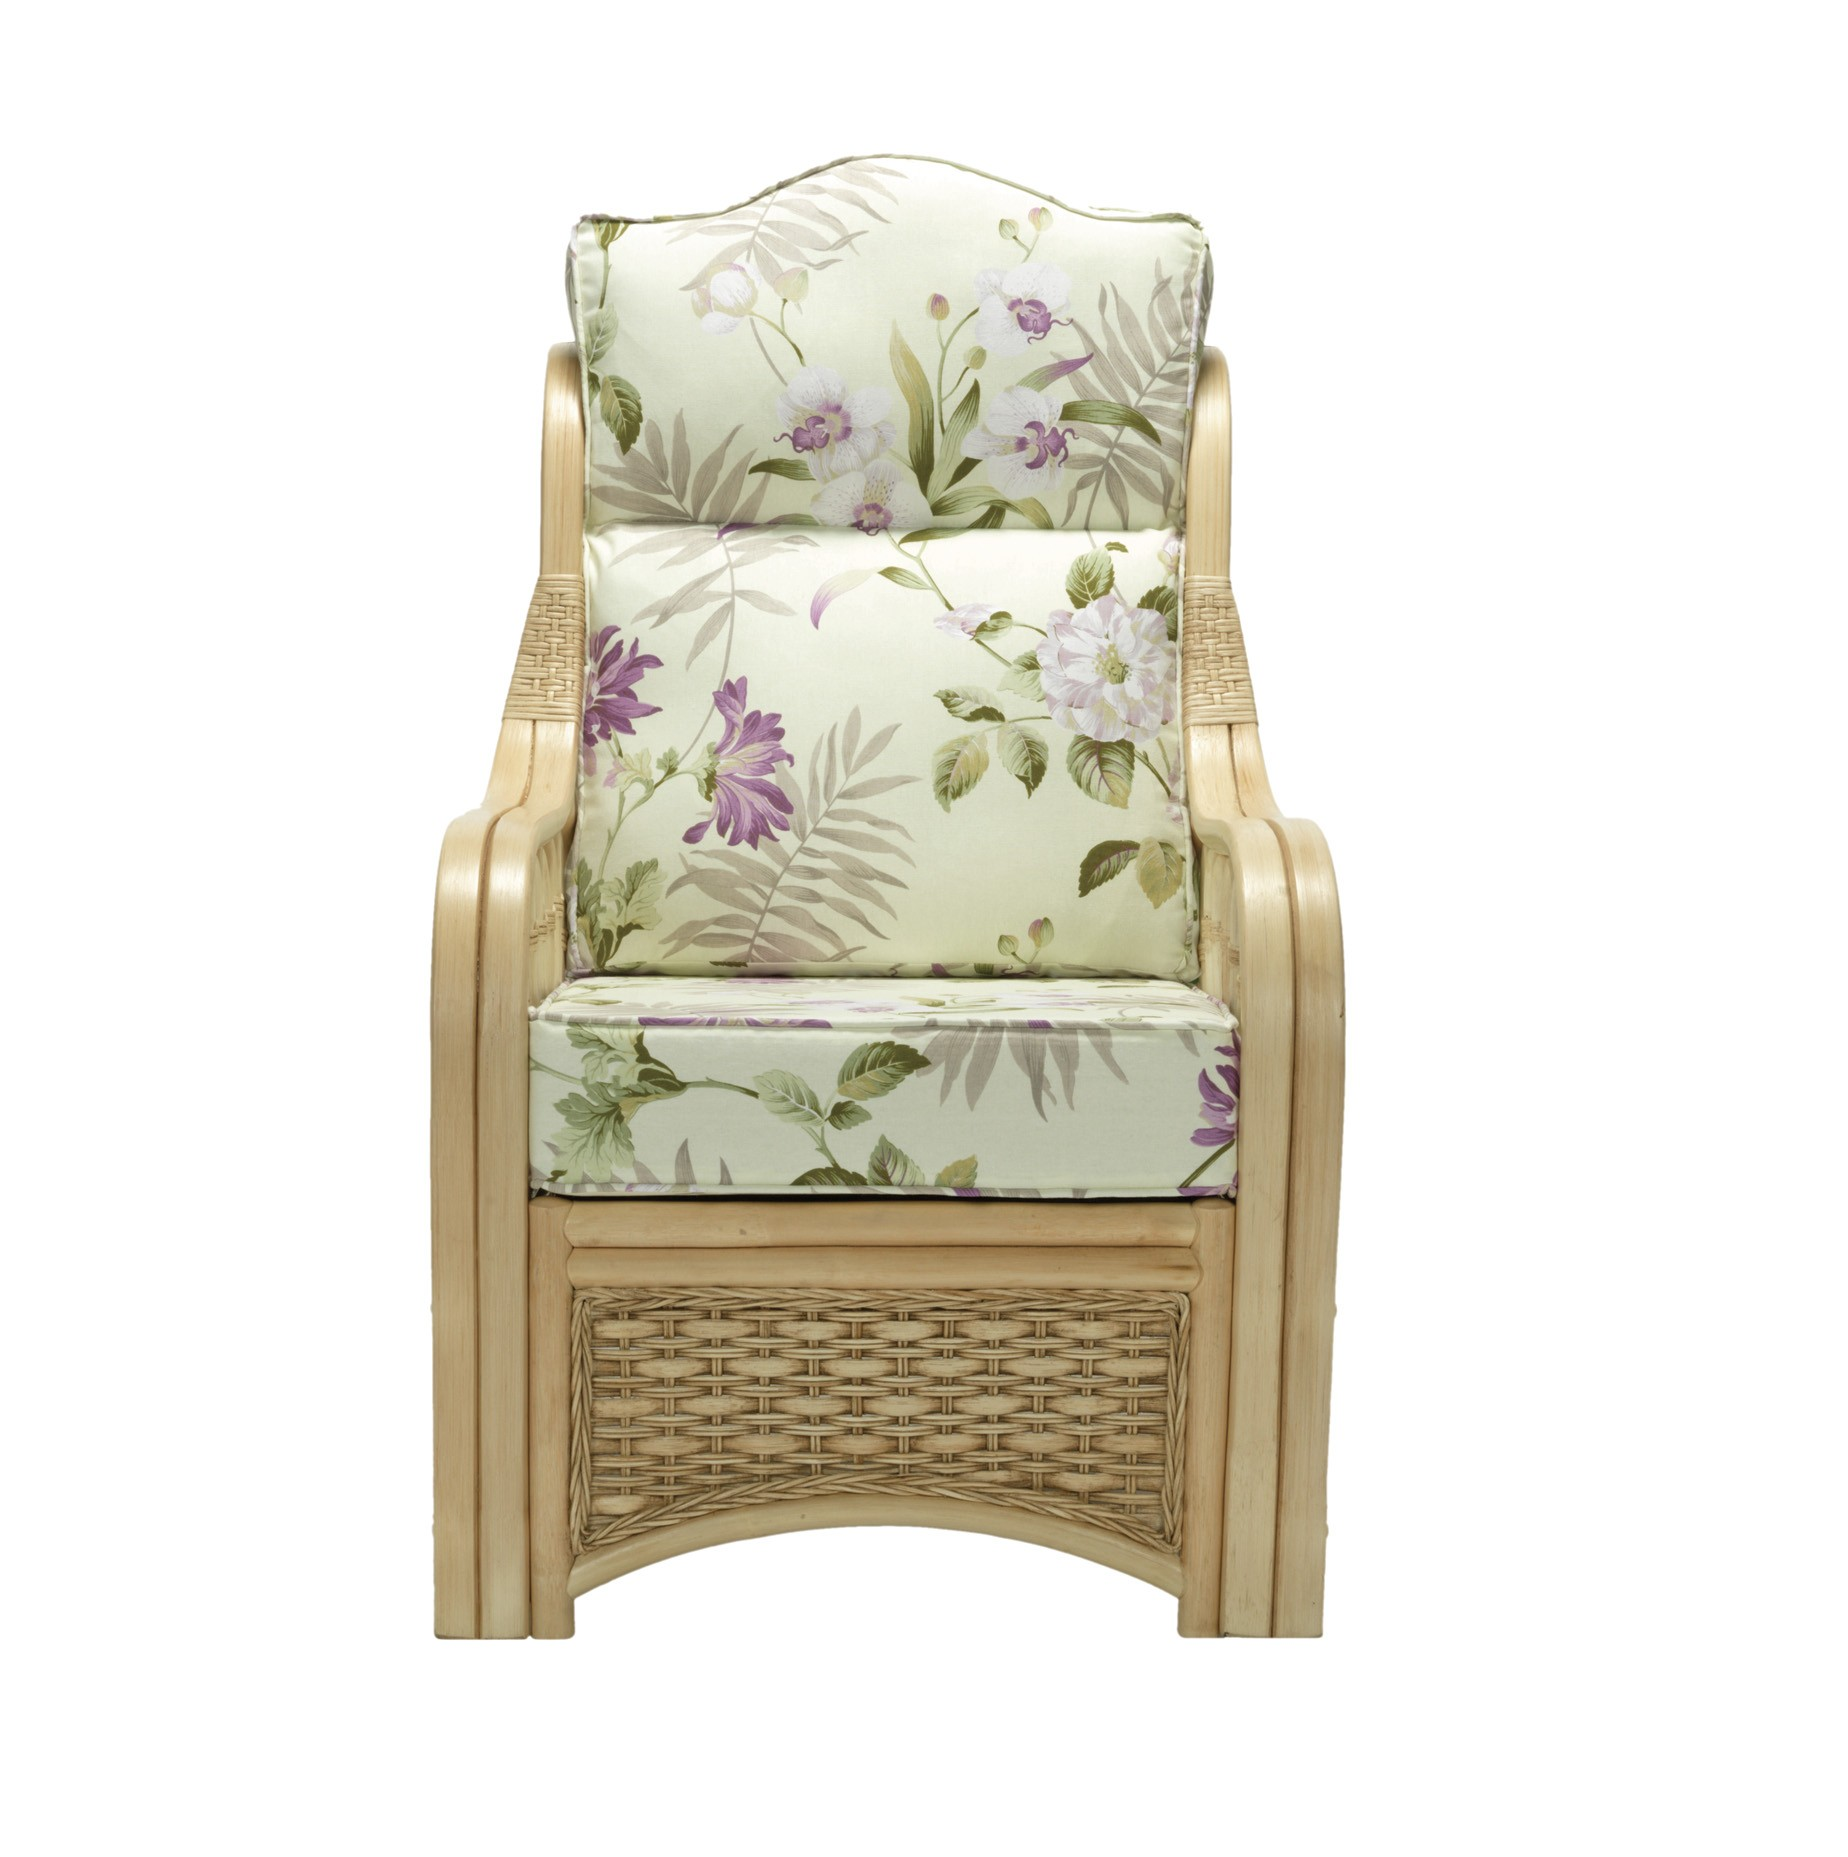 Desser Vale Armchair and Cushion